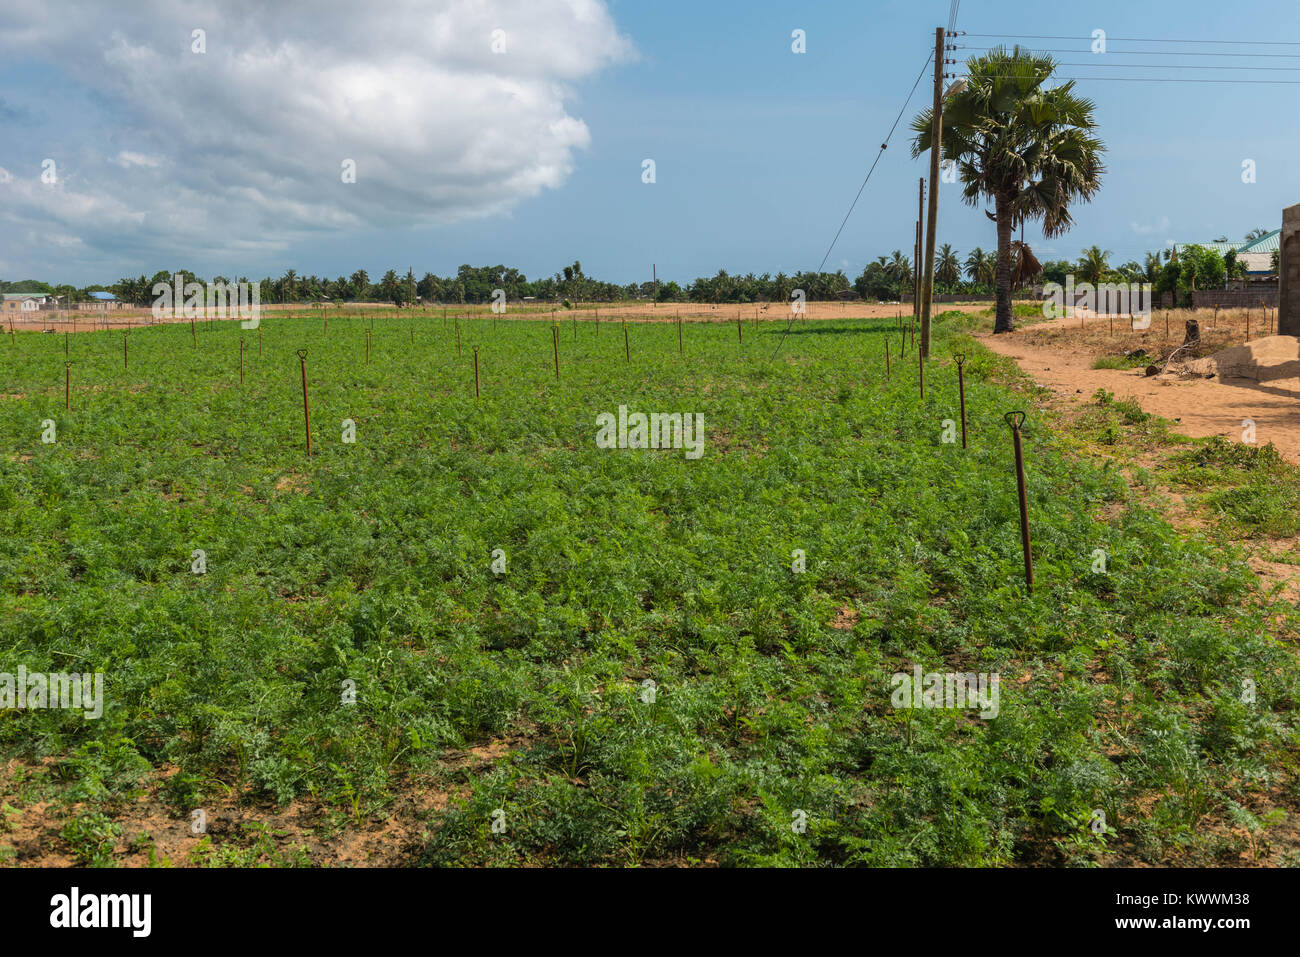 Growing carrots on an irrigated field, Ghana, Volta Region, Anloga - Stock Image